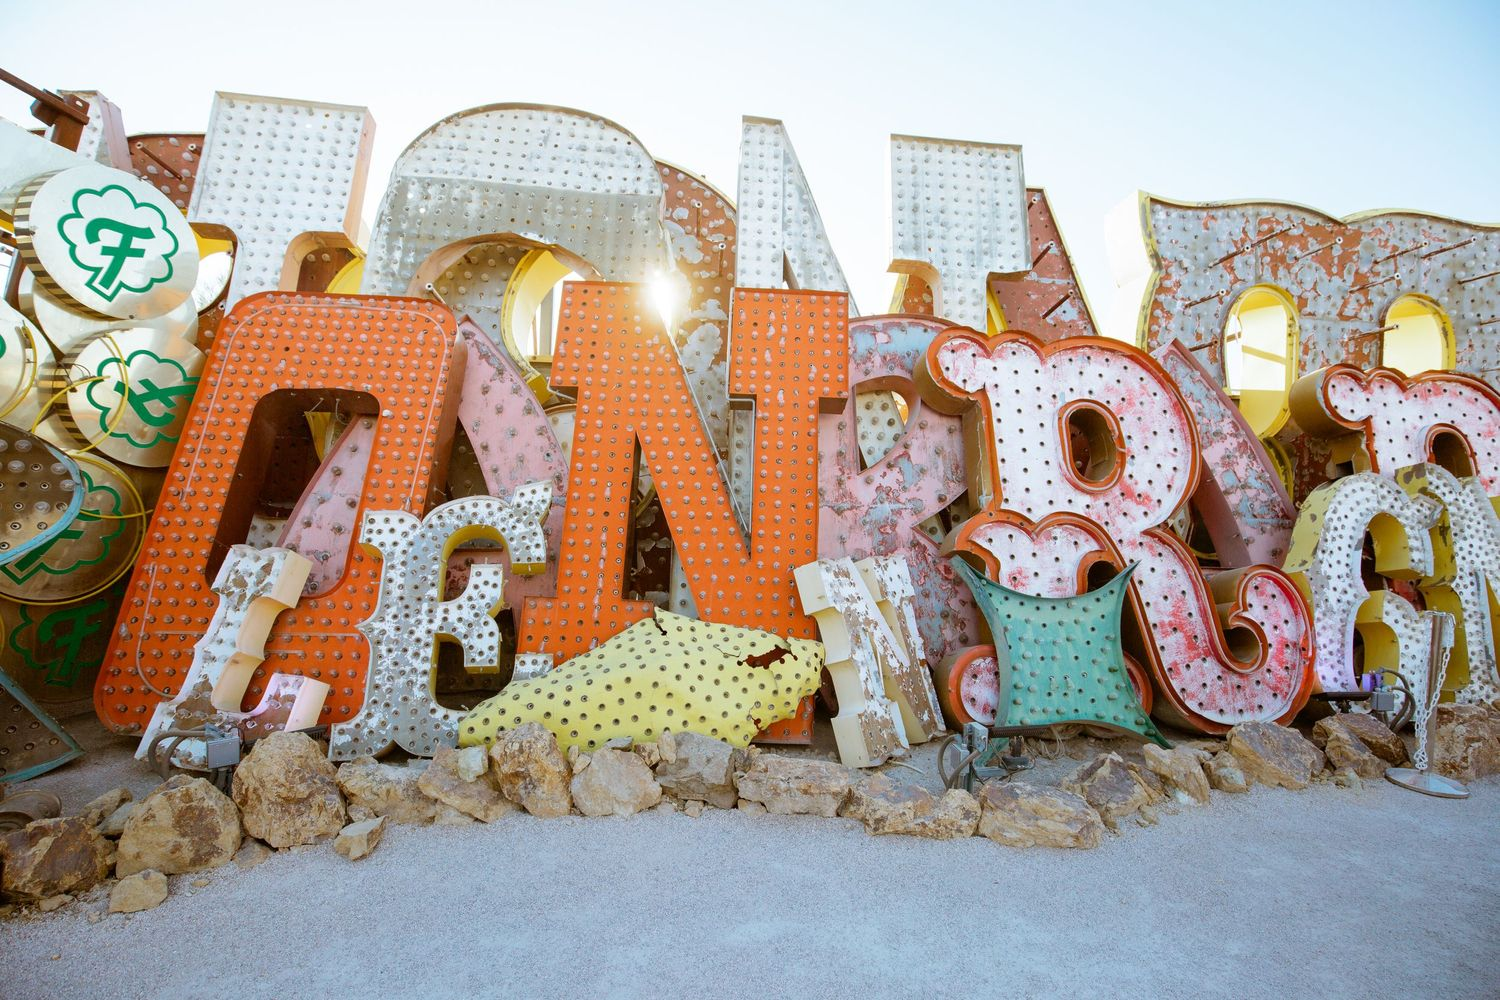 Neon Museum - Detailed shots - retired neon signs